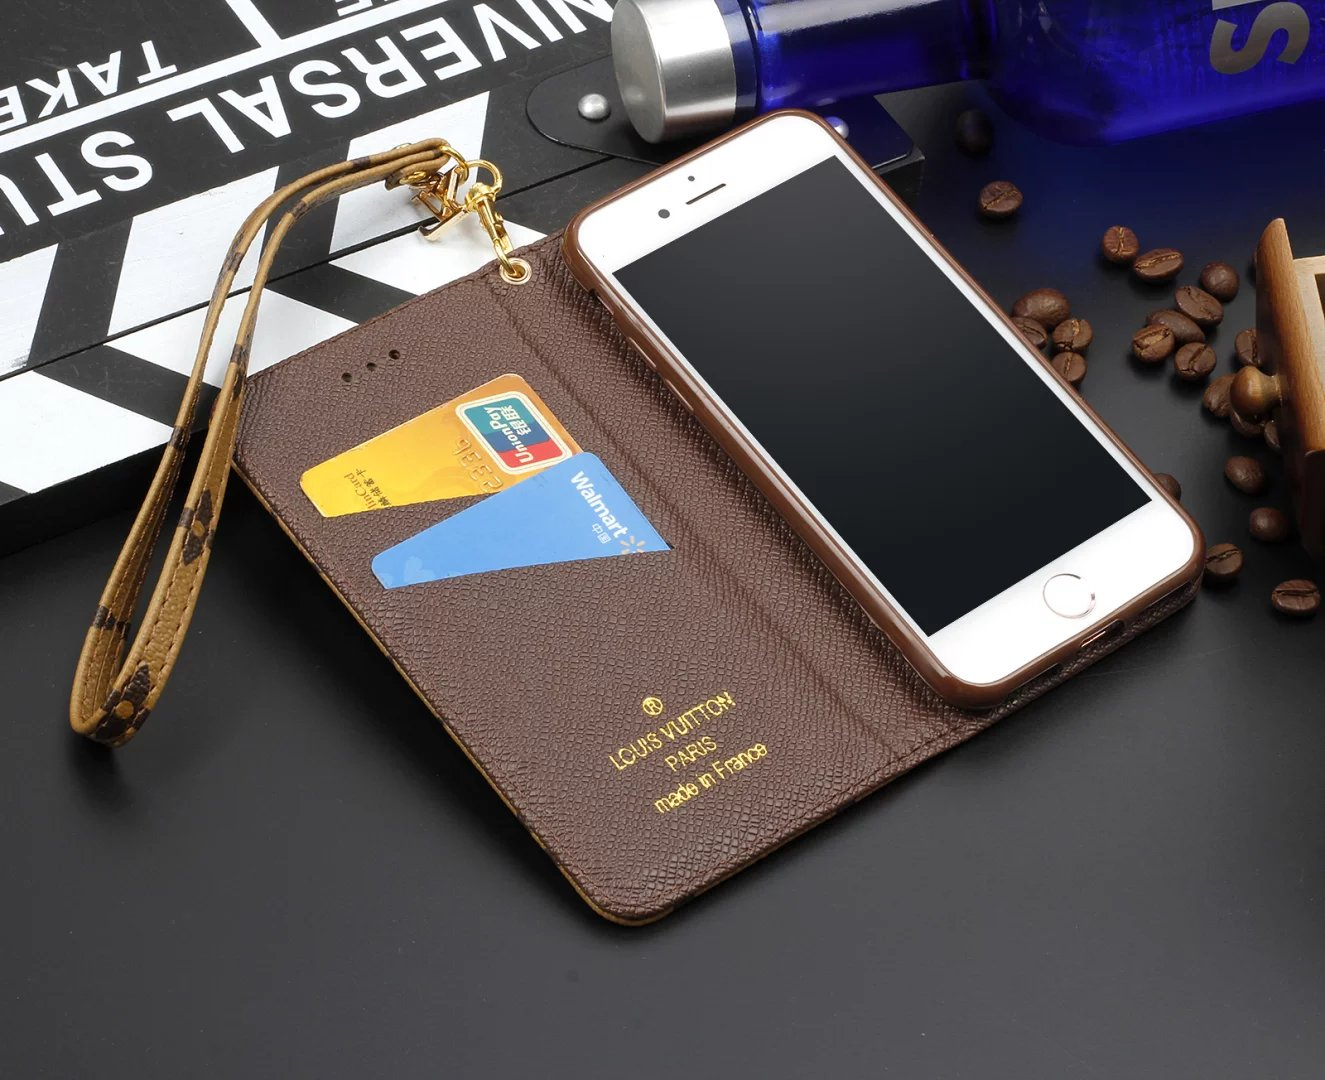 iphone hülle holz iphone case selber machen Louis Vuitton iphone7 hülle metall hülle iphone 7 lederetui für iphone 7 iphone 7 hülle cool handyhülle 7lbst handyhülle htc hülle für iphone 7 gold